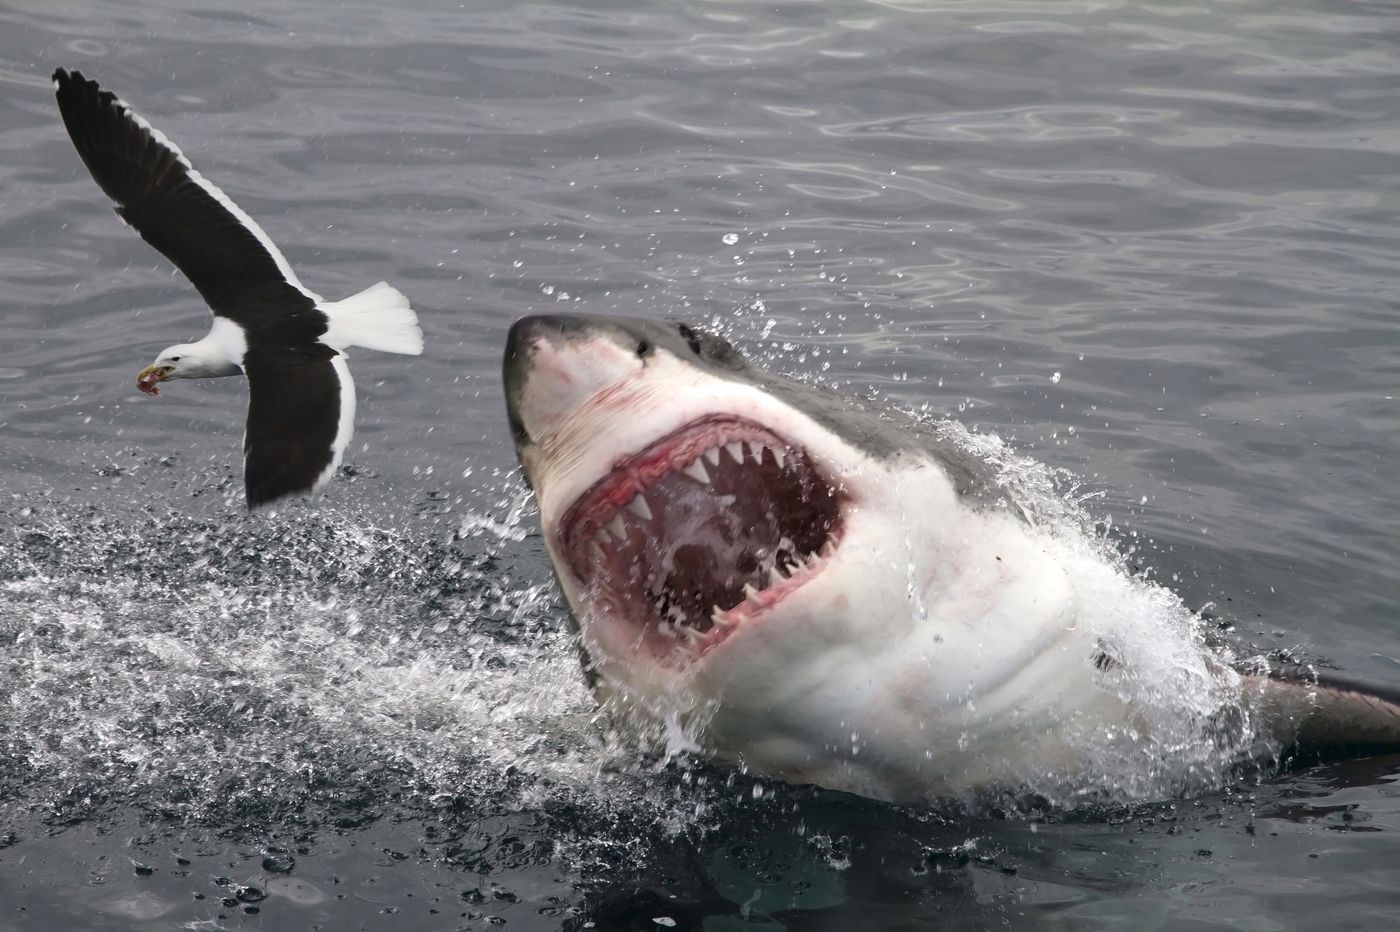 Shark sightings are up, along with ocean temperatures. Here's what to do if you encounter a shark.